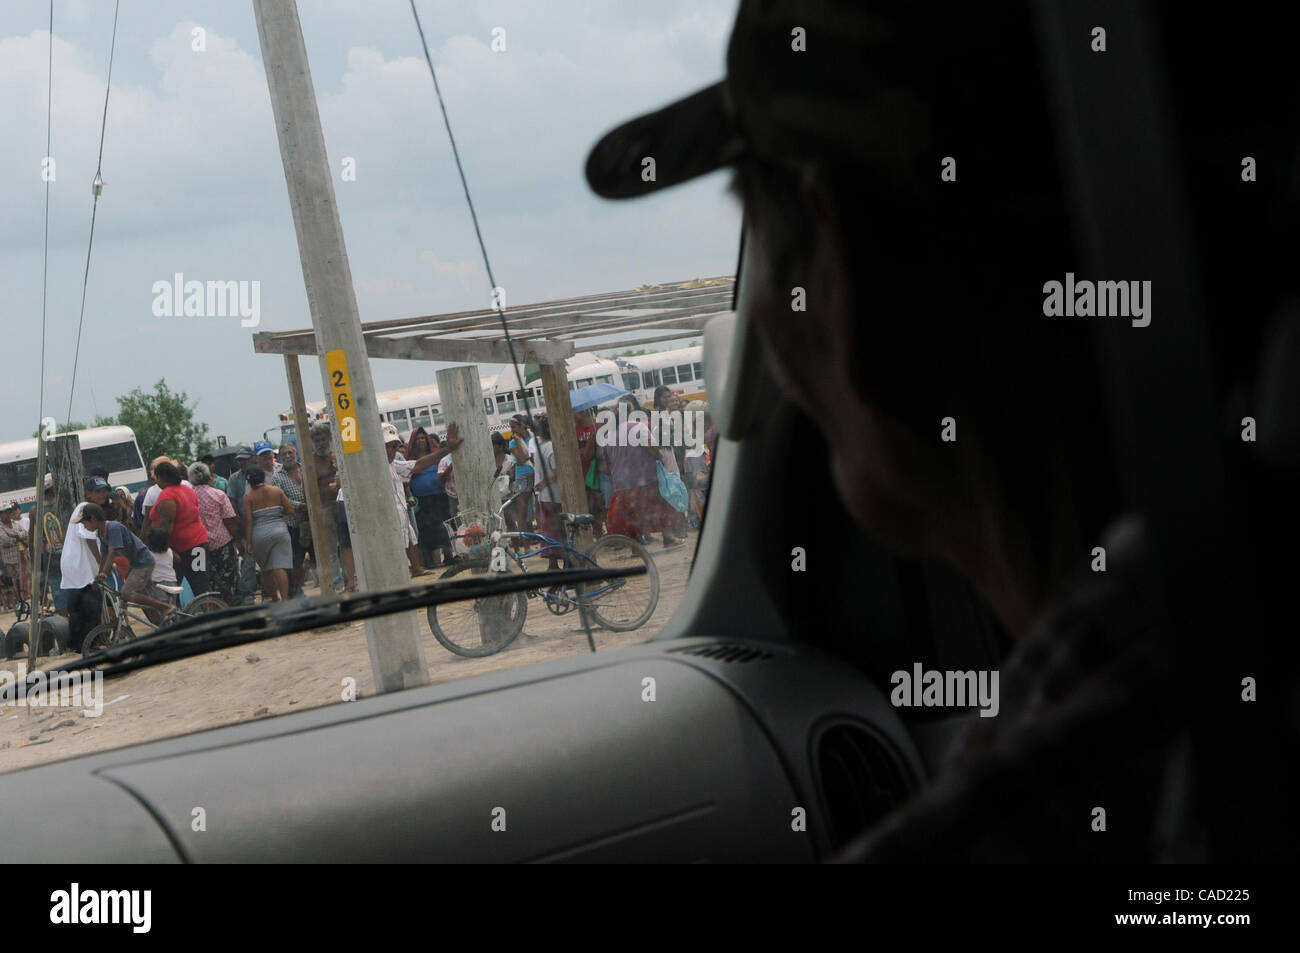 Aug 10, 2010 - Matamoros, Mexico - CHUCK HURMAN looks out from the wind sheild of a Frank Ferree Border Relief truck - Stock Image